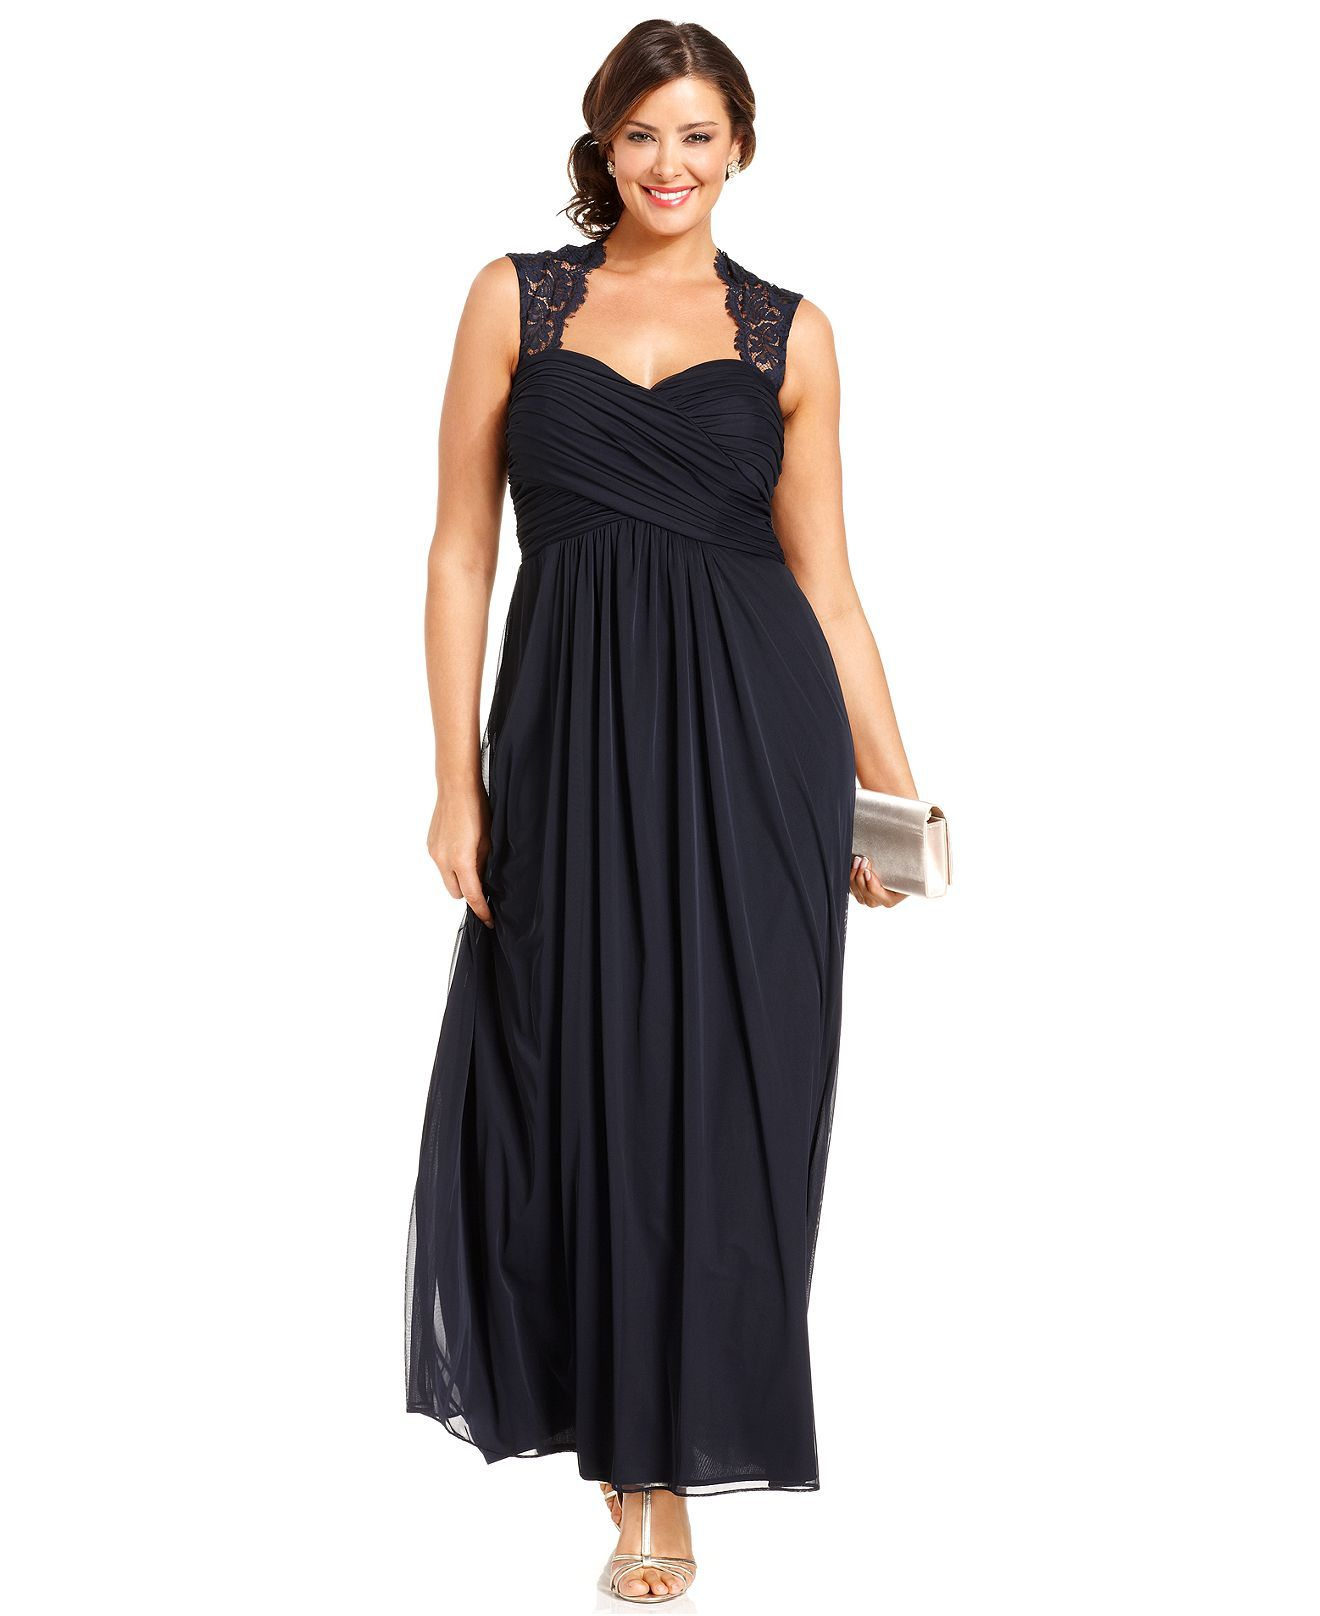 069d1ab7412 Xscape Plus Size Dress